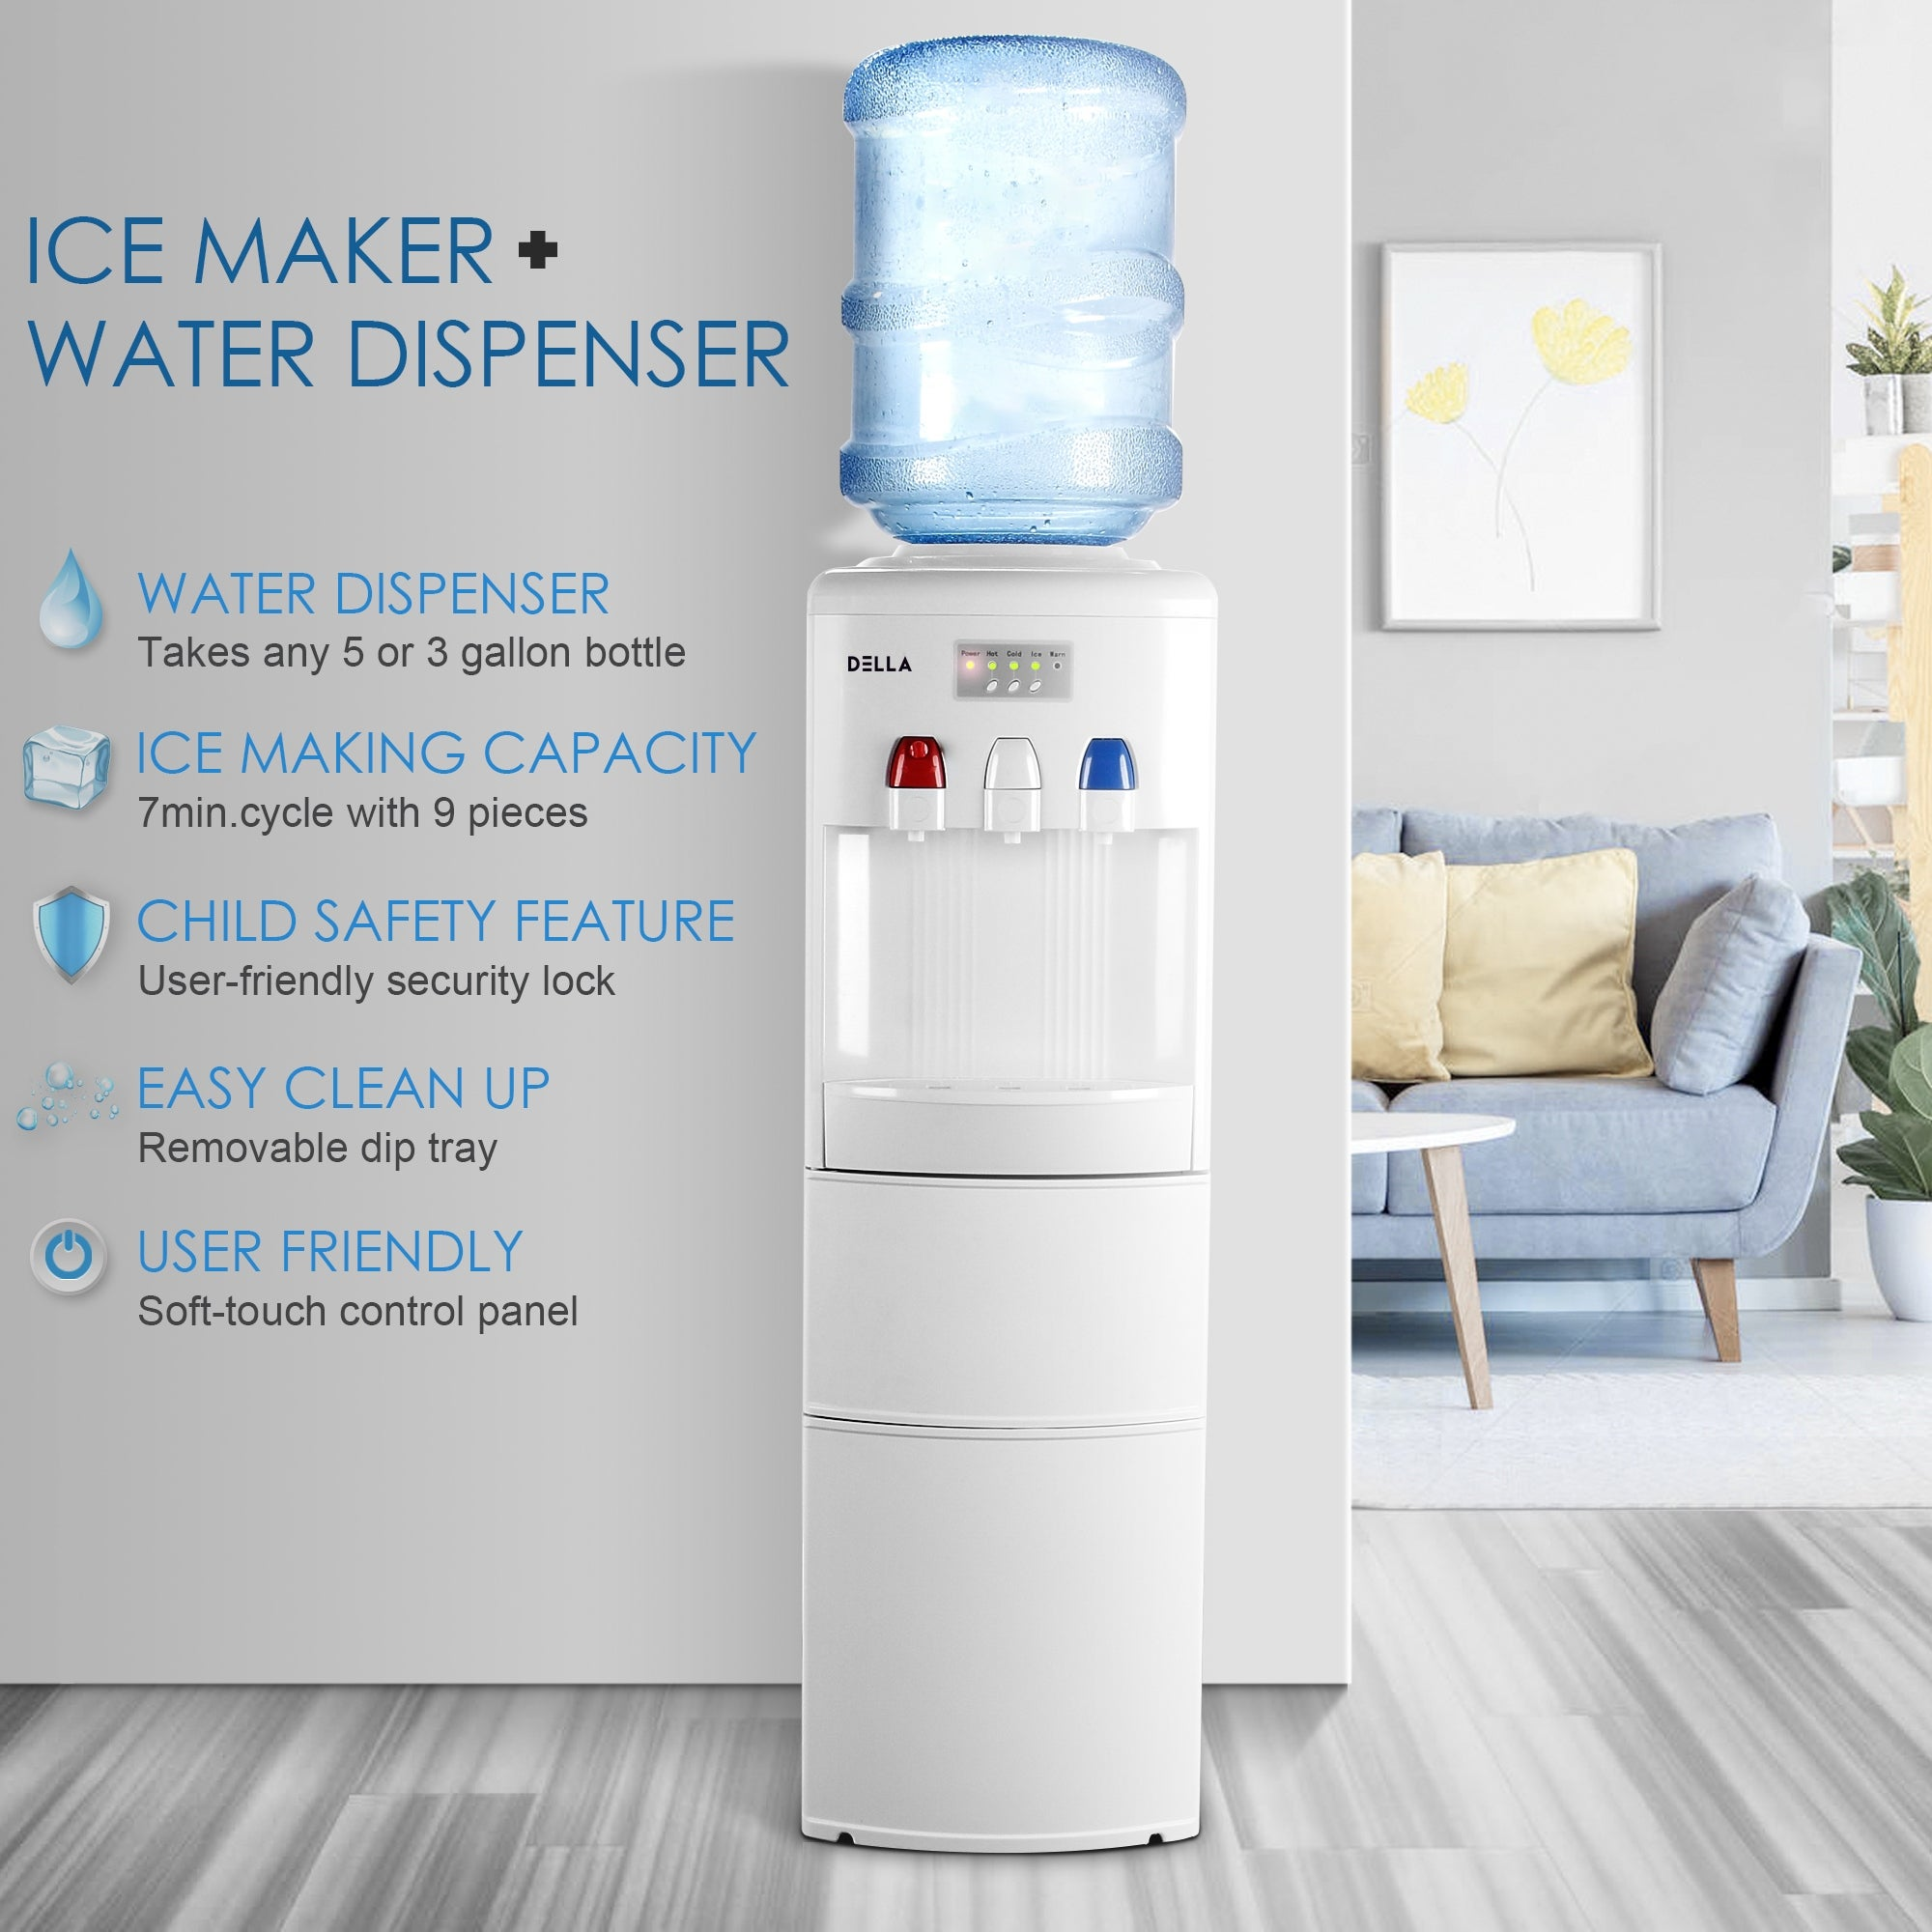 DELLA Water Dispenser Hot Cold Child Safety Lock Top Loading Ice Maker  Counter Spout Function Upright